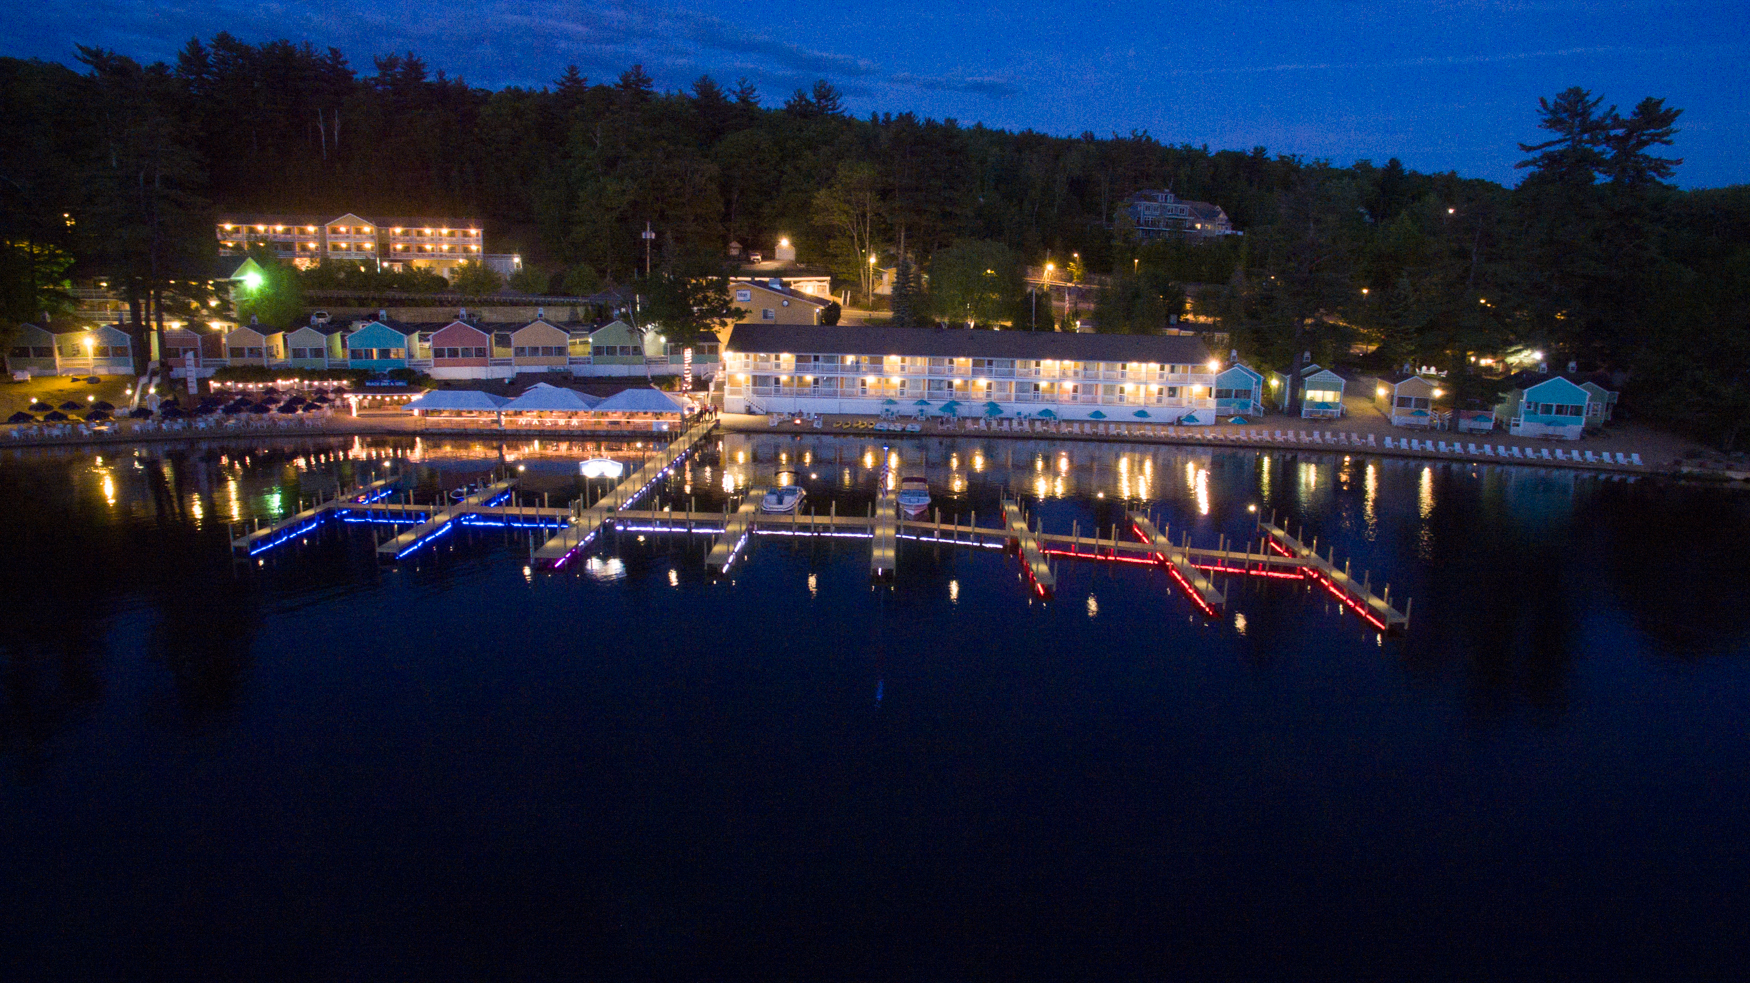 Lake Winnipesaukee Rooms, Cottages and MORE at the NASWA Resort